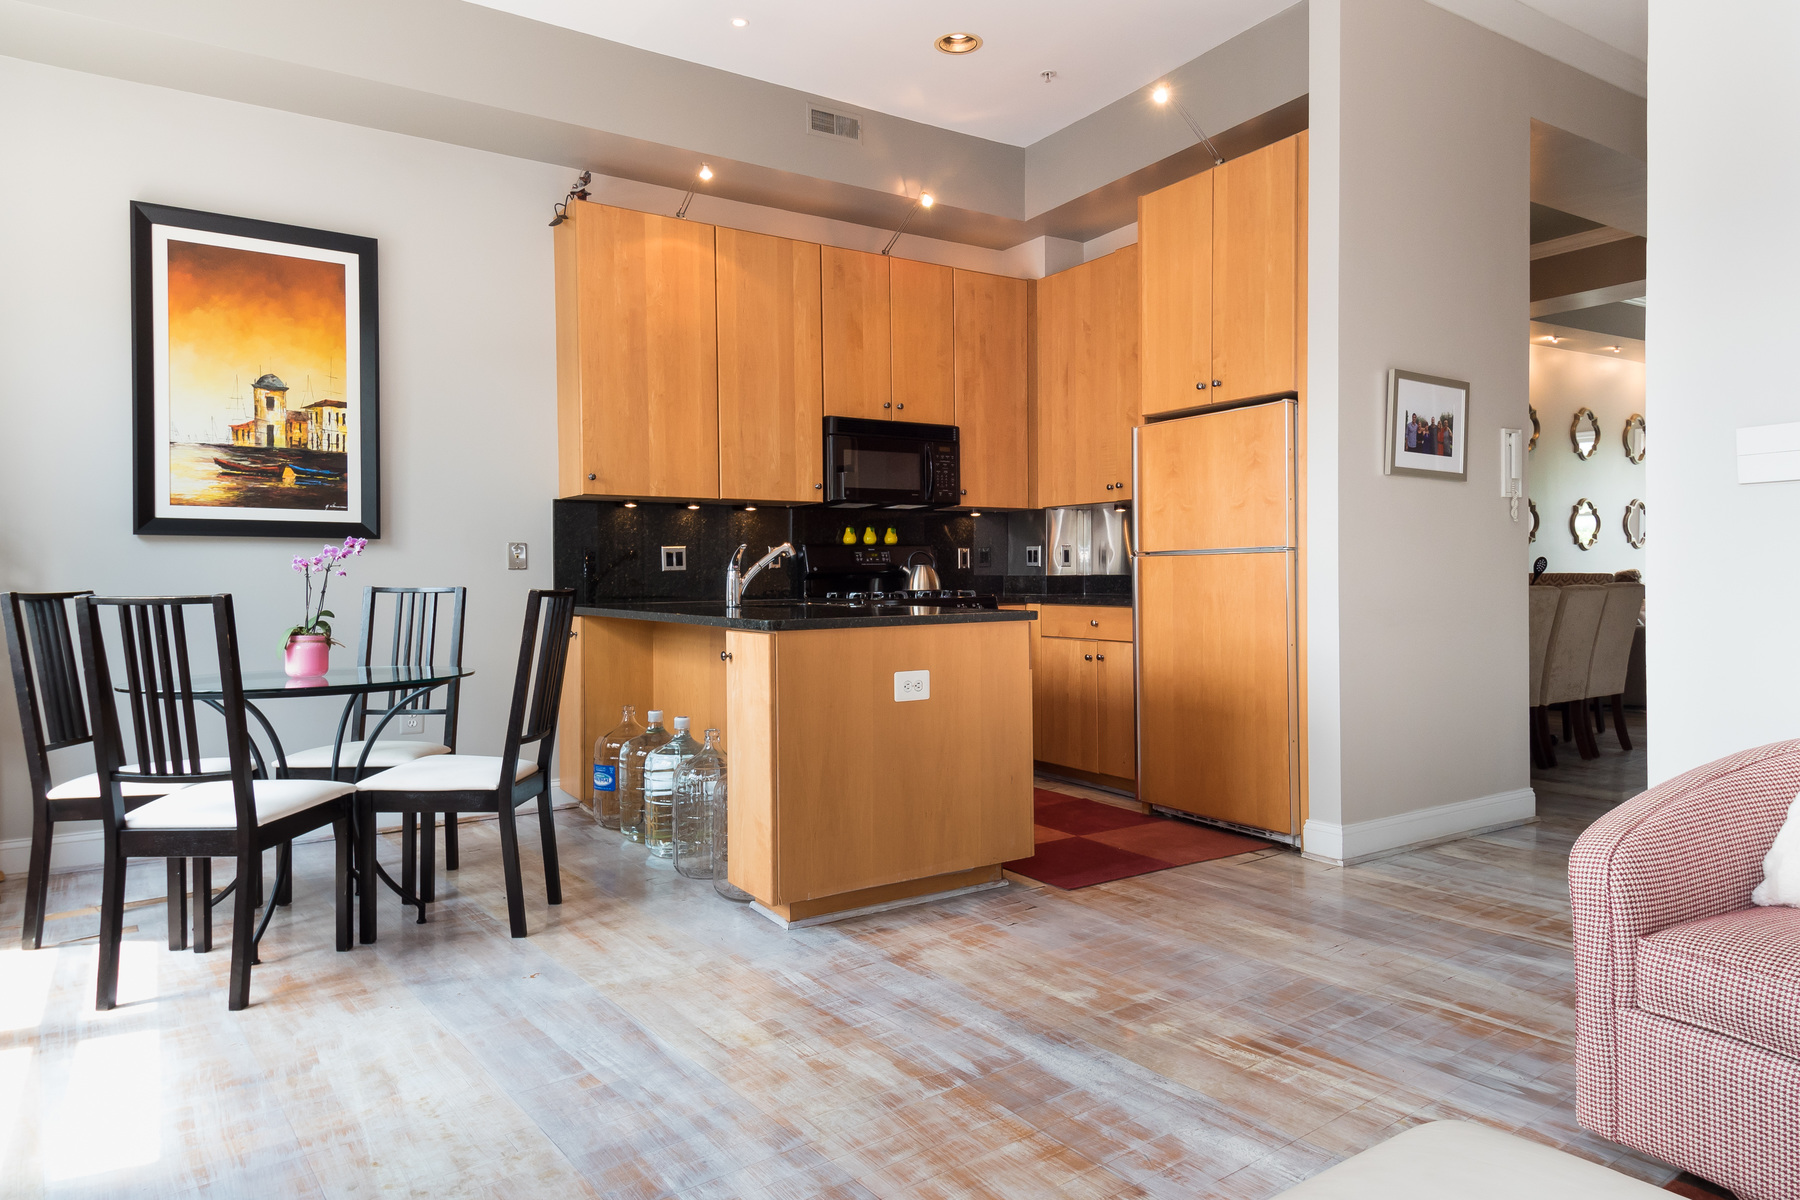 Additional photo for property listing at 27 Logan Circle Nw 4, Washington  Washington, Distrito De Columbia 20005 Estados Unidos